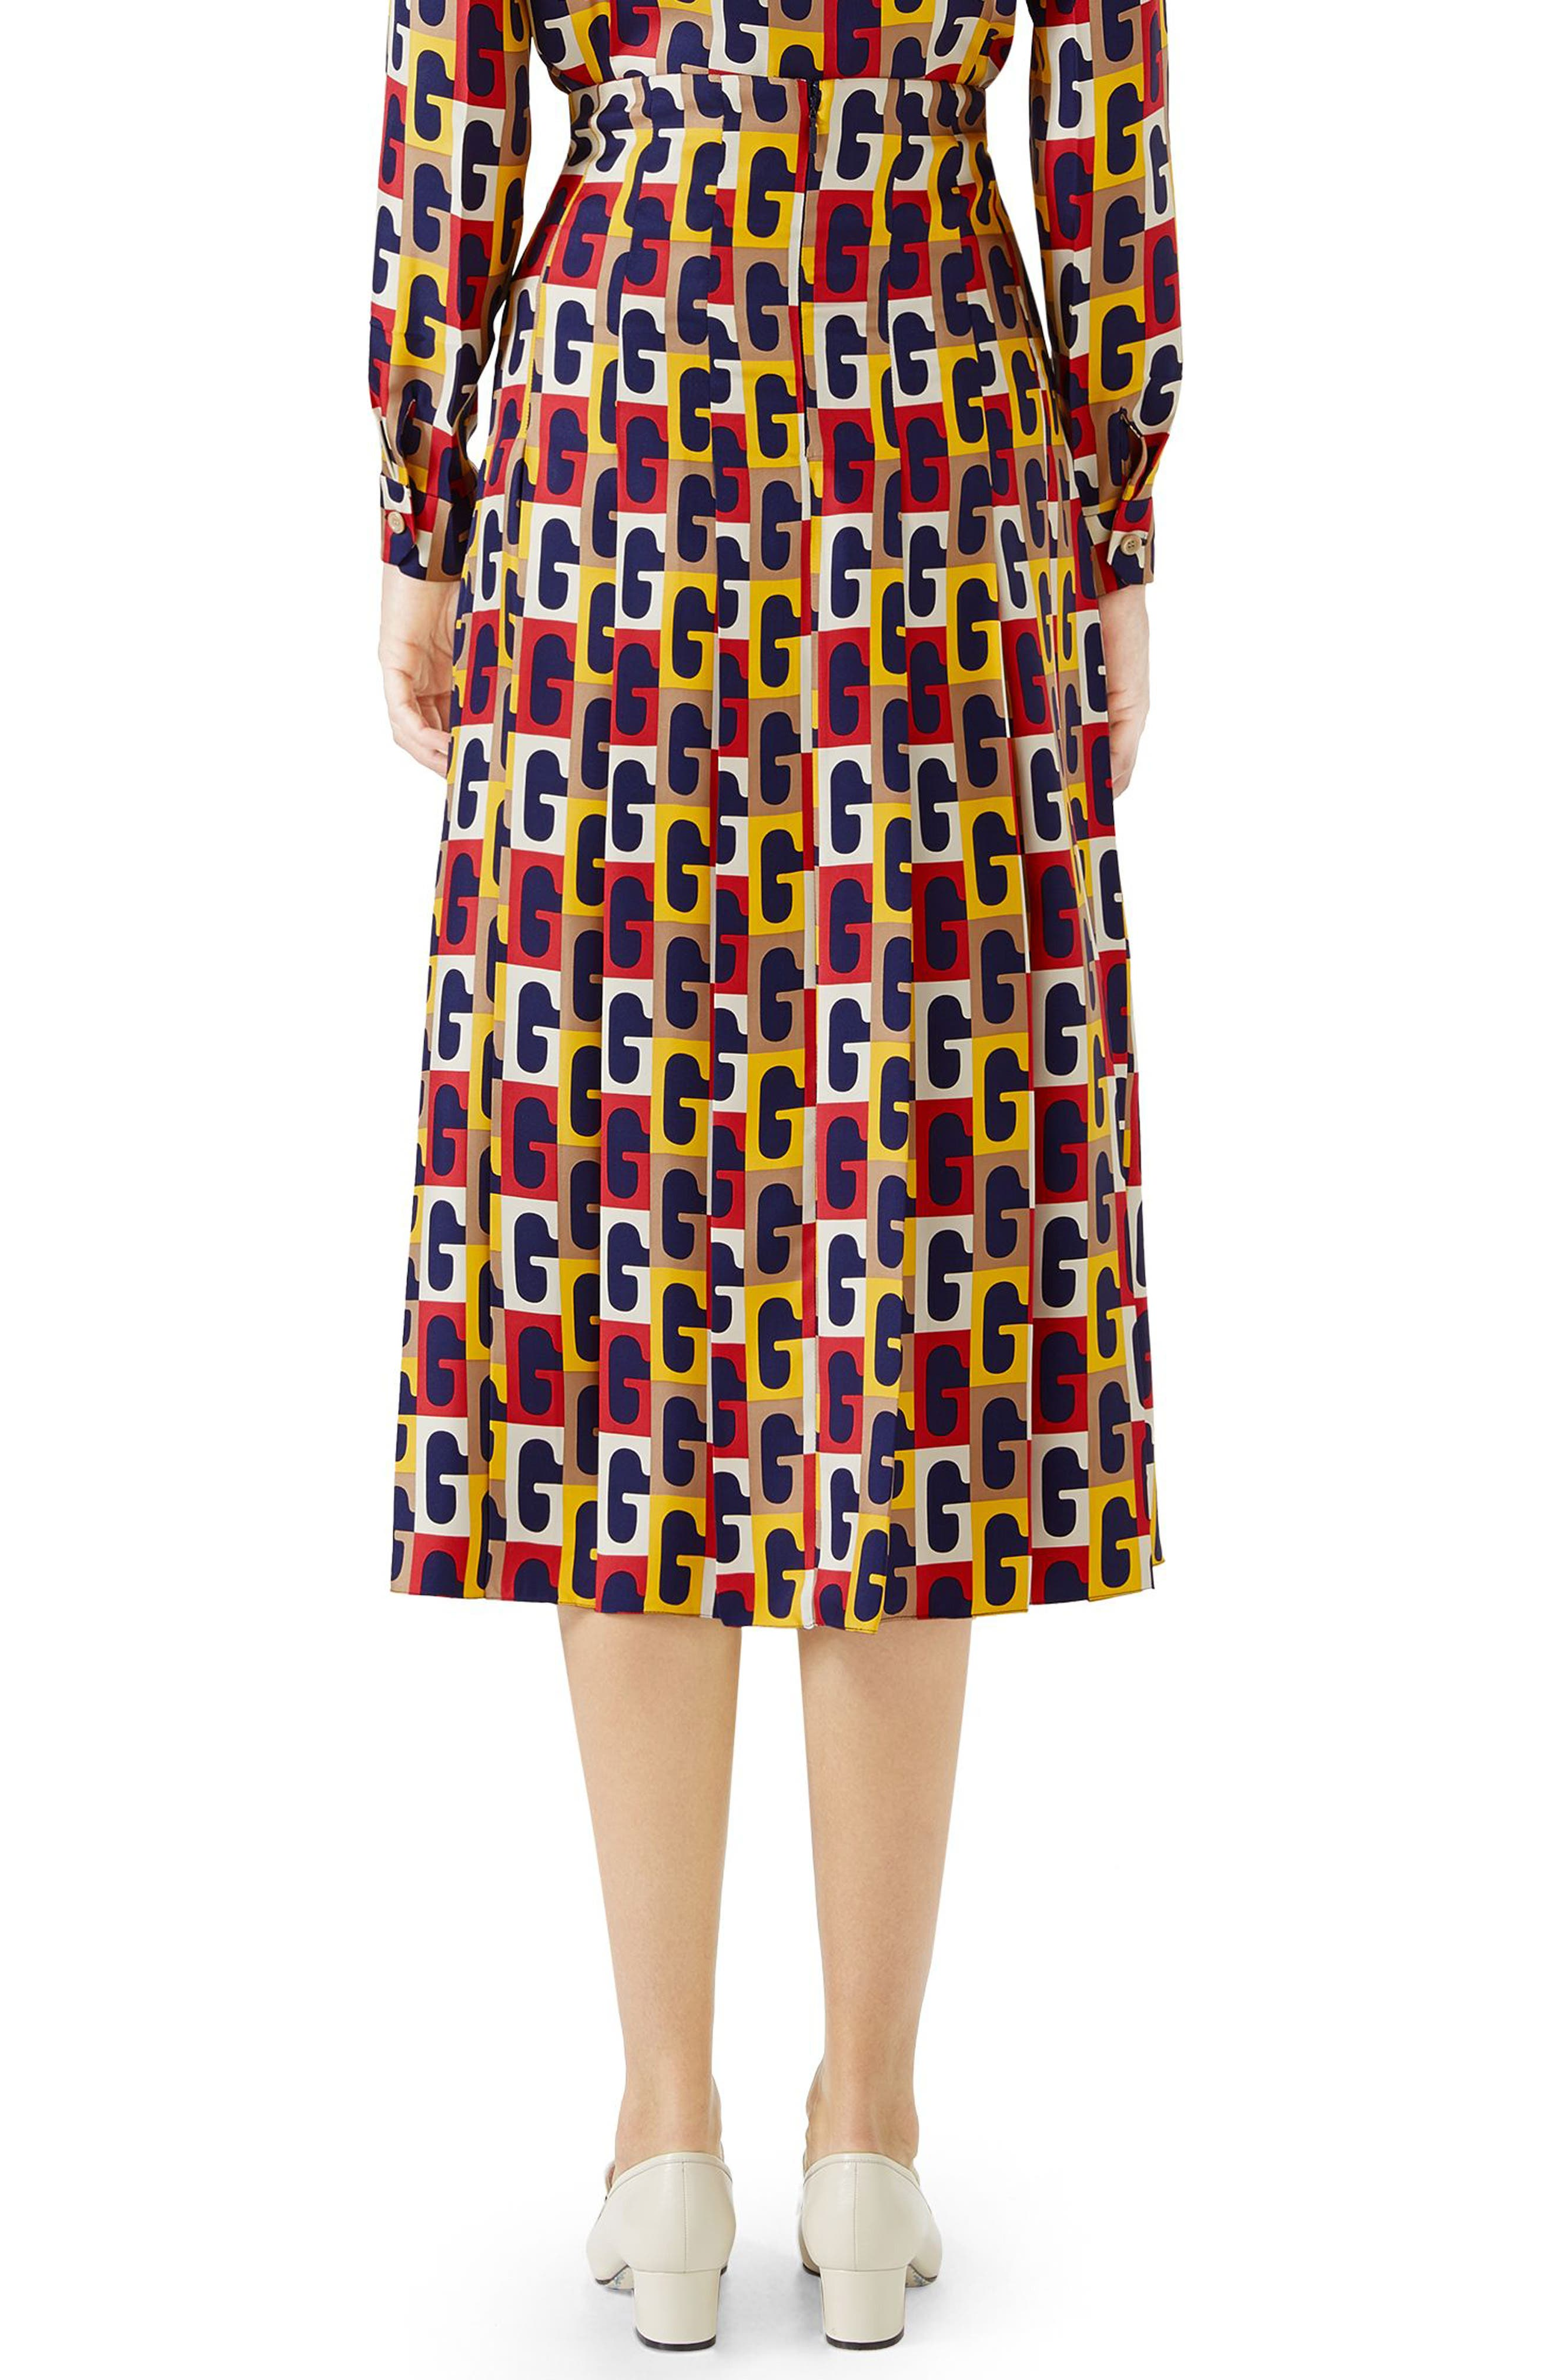 G-Sequence Print Silk Skirt,                             Alternate thumbnail 2, color,                             Ivory/ Yellow/ Red Print